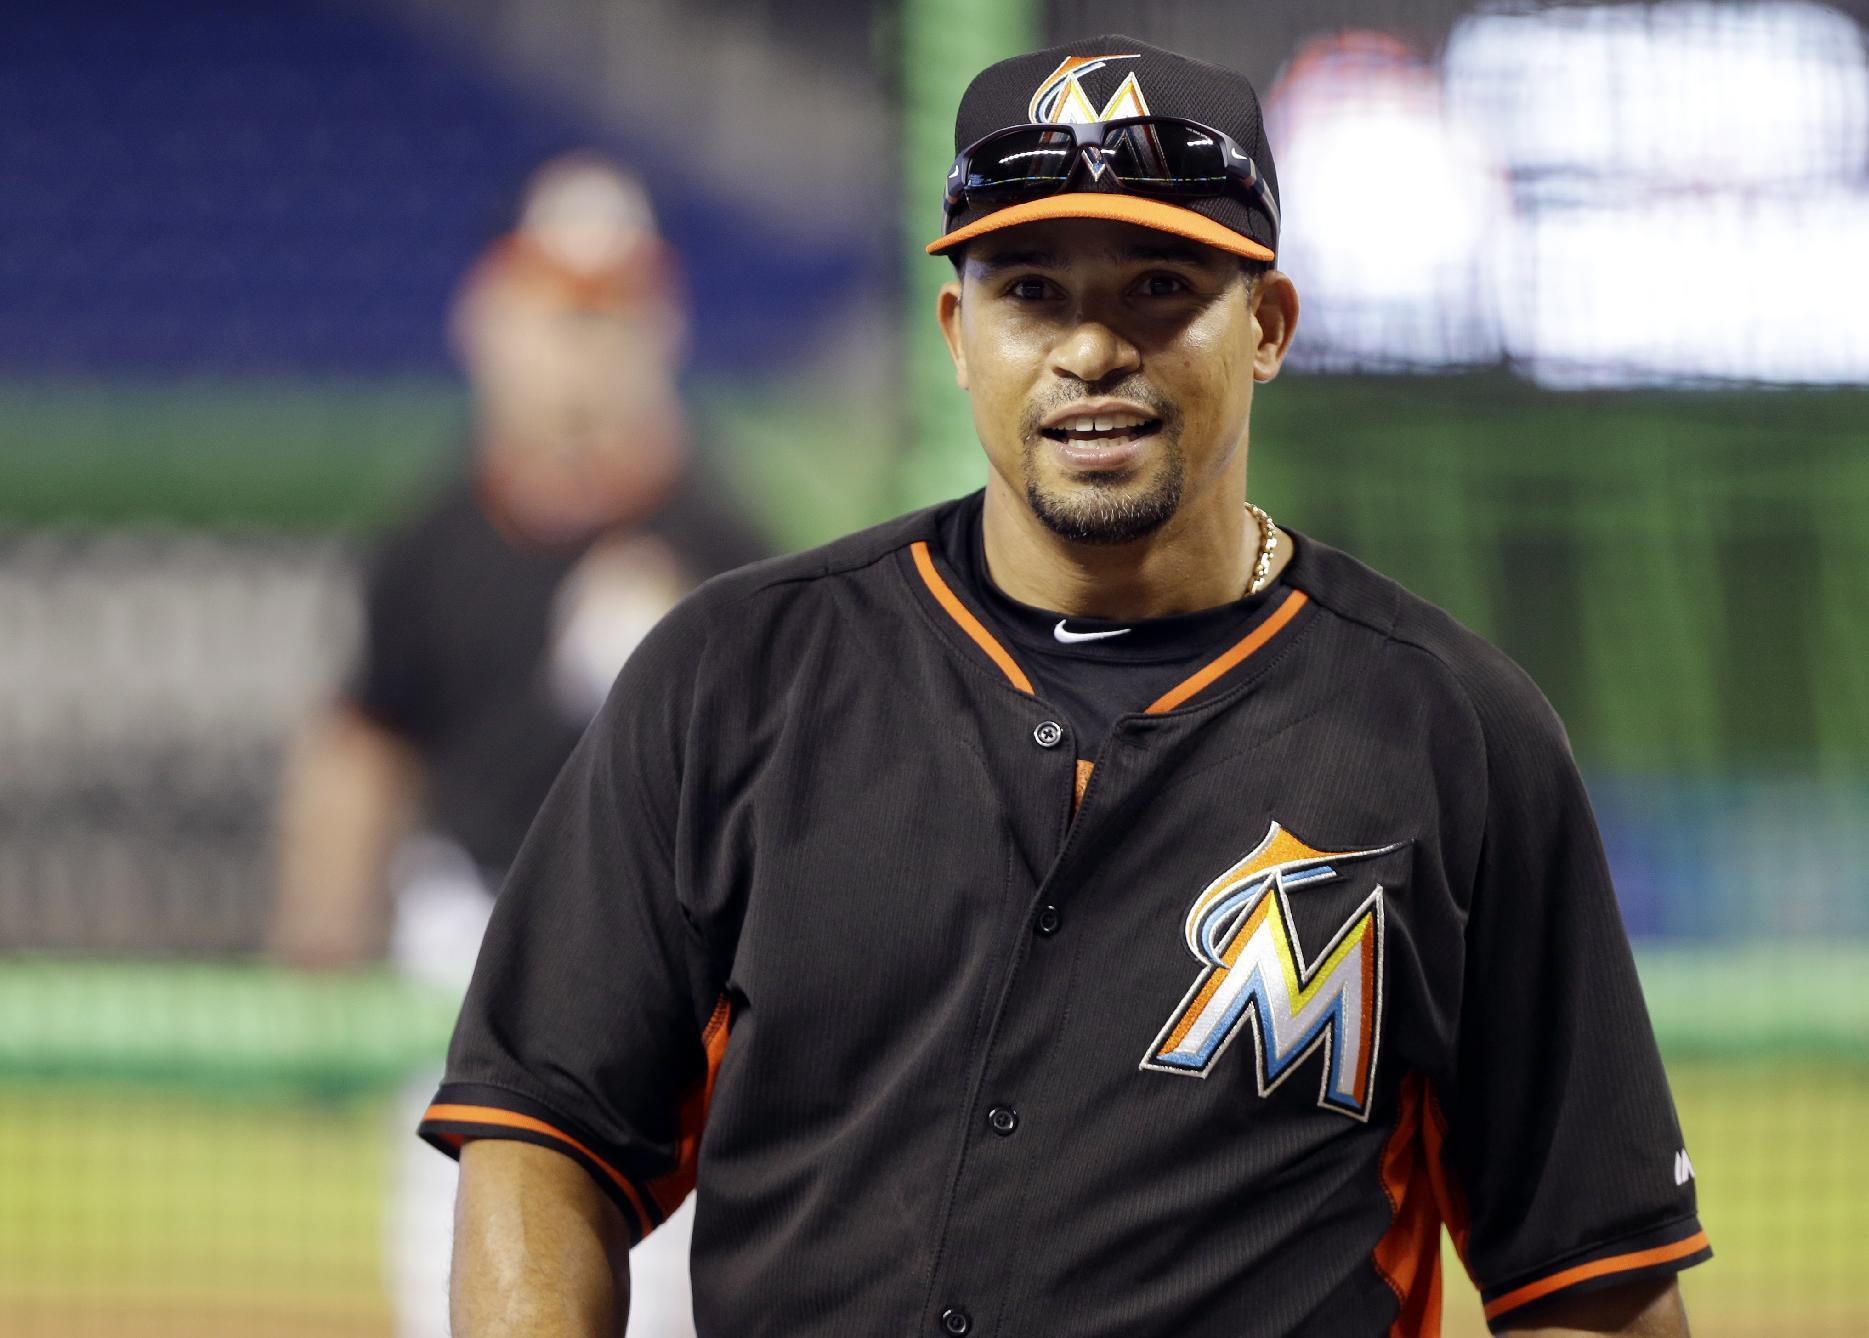 Rafael Furcal faces latest injury setback — a torn hamstring